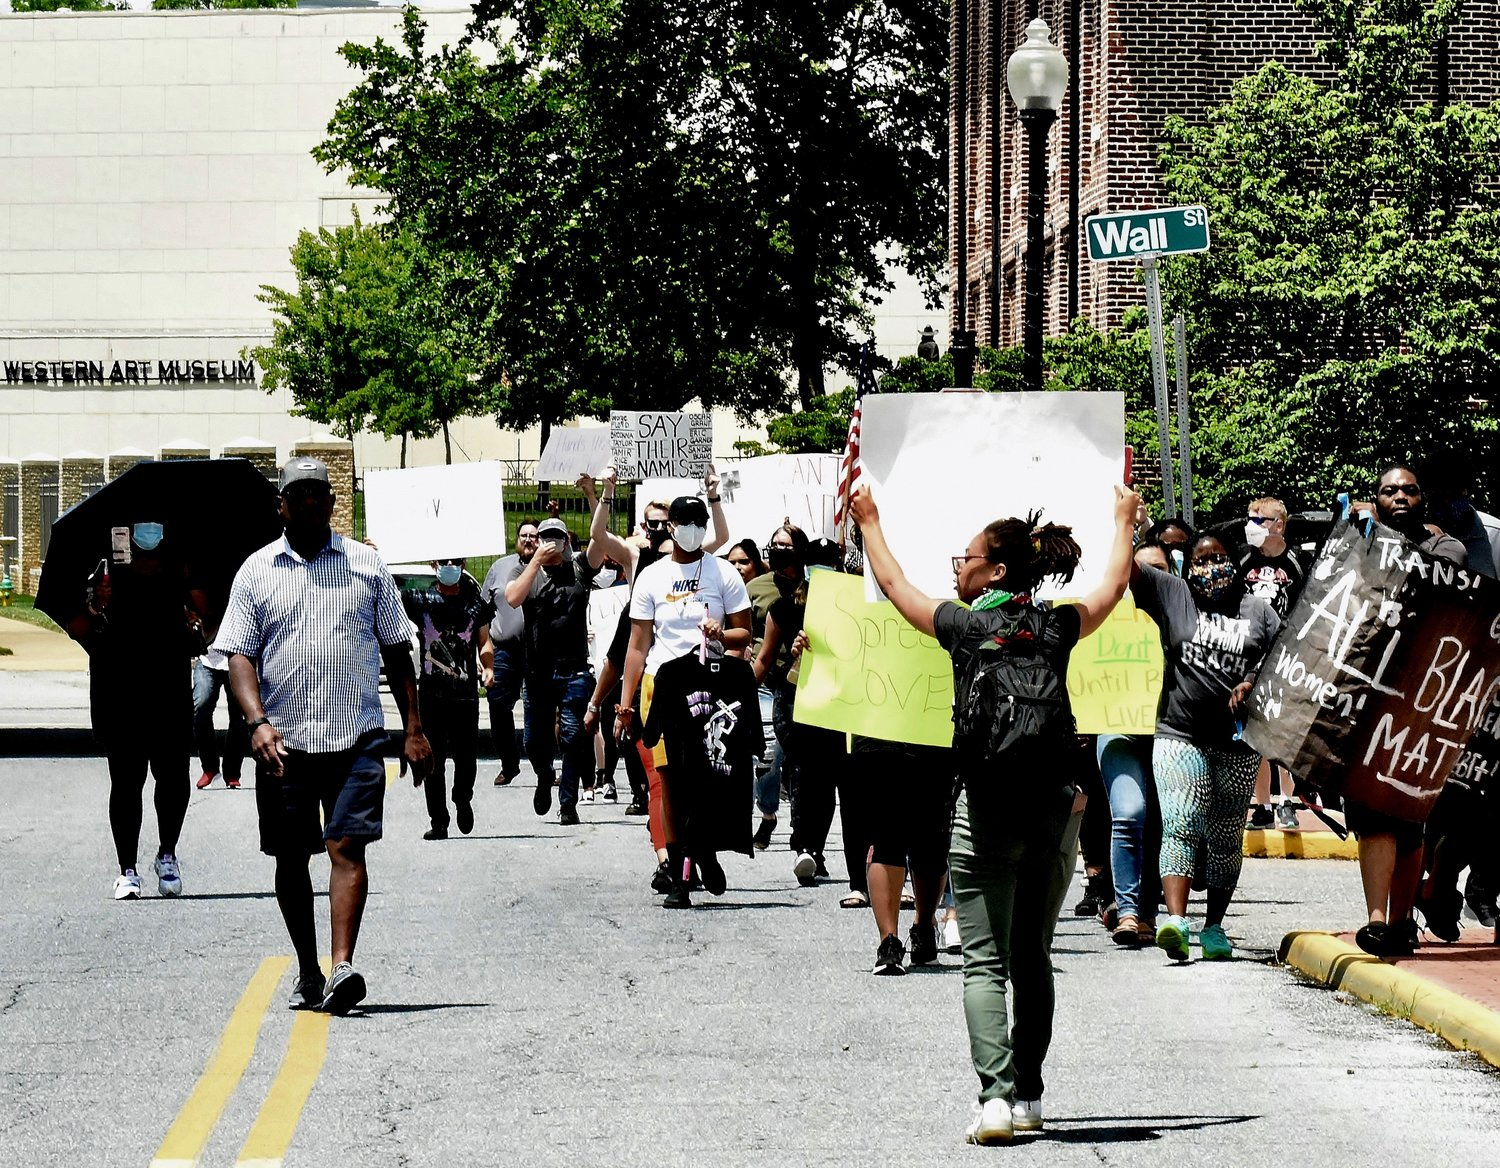 Hundreds of people participated in a demonstration through downtown Cartersville Saturday.